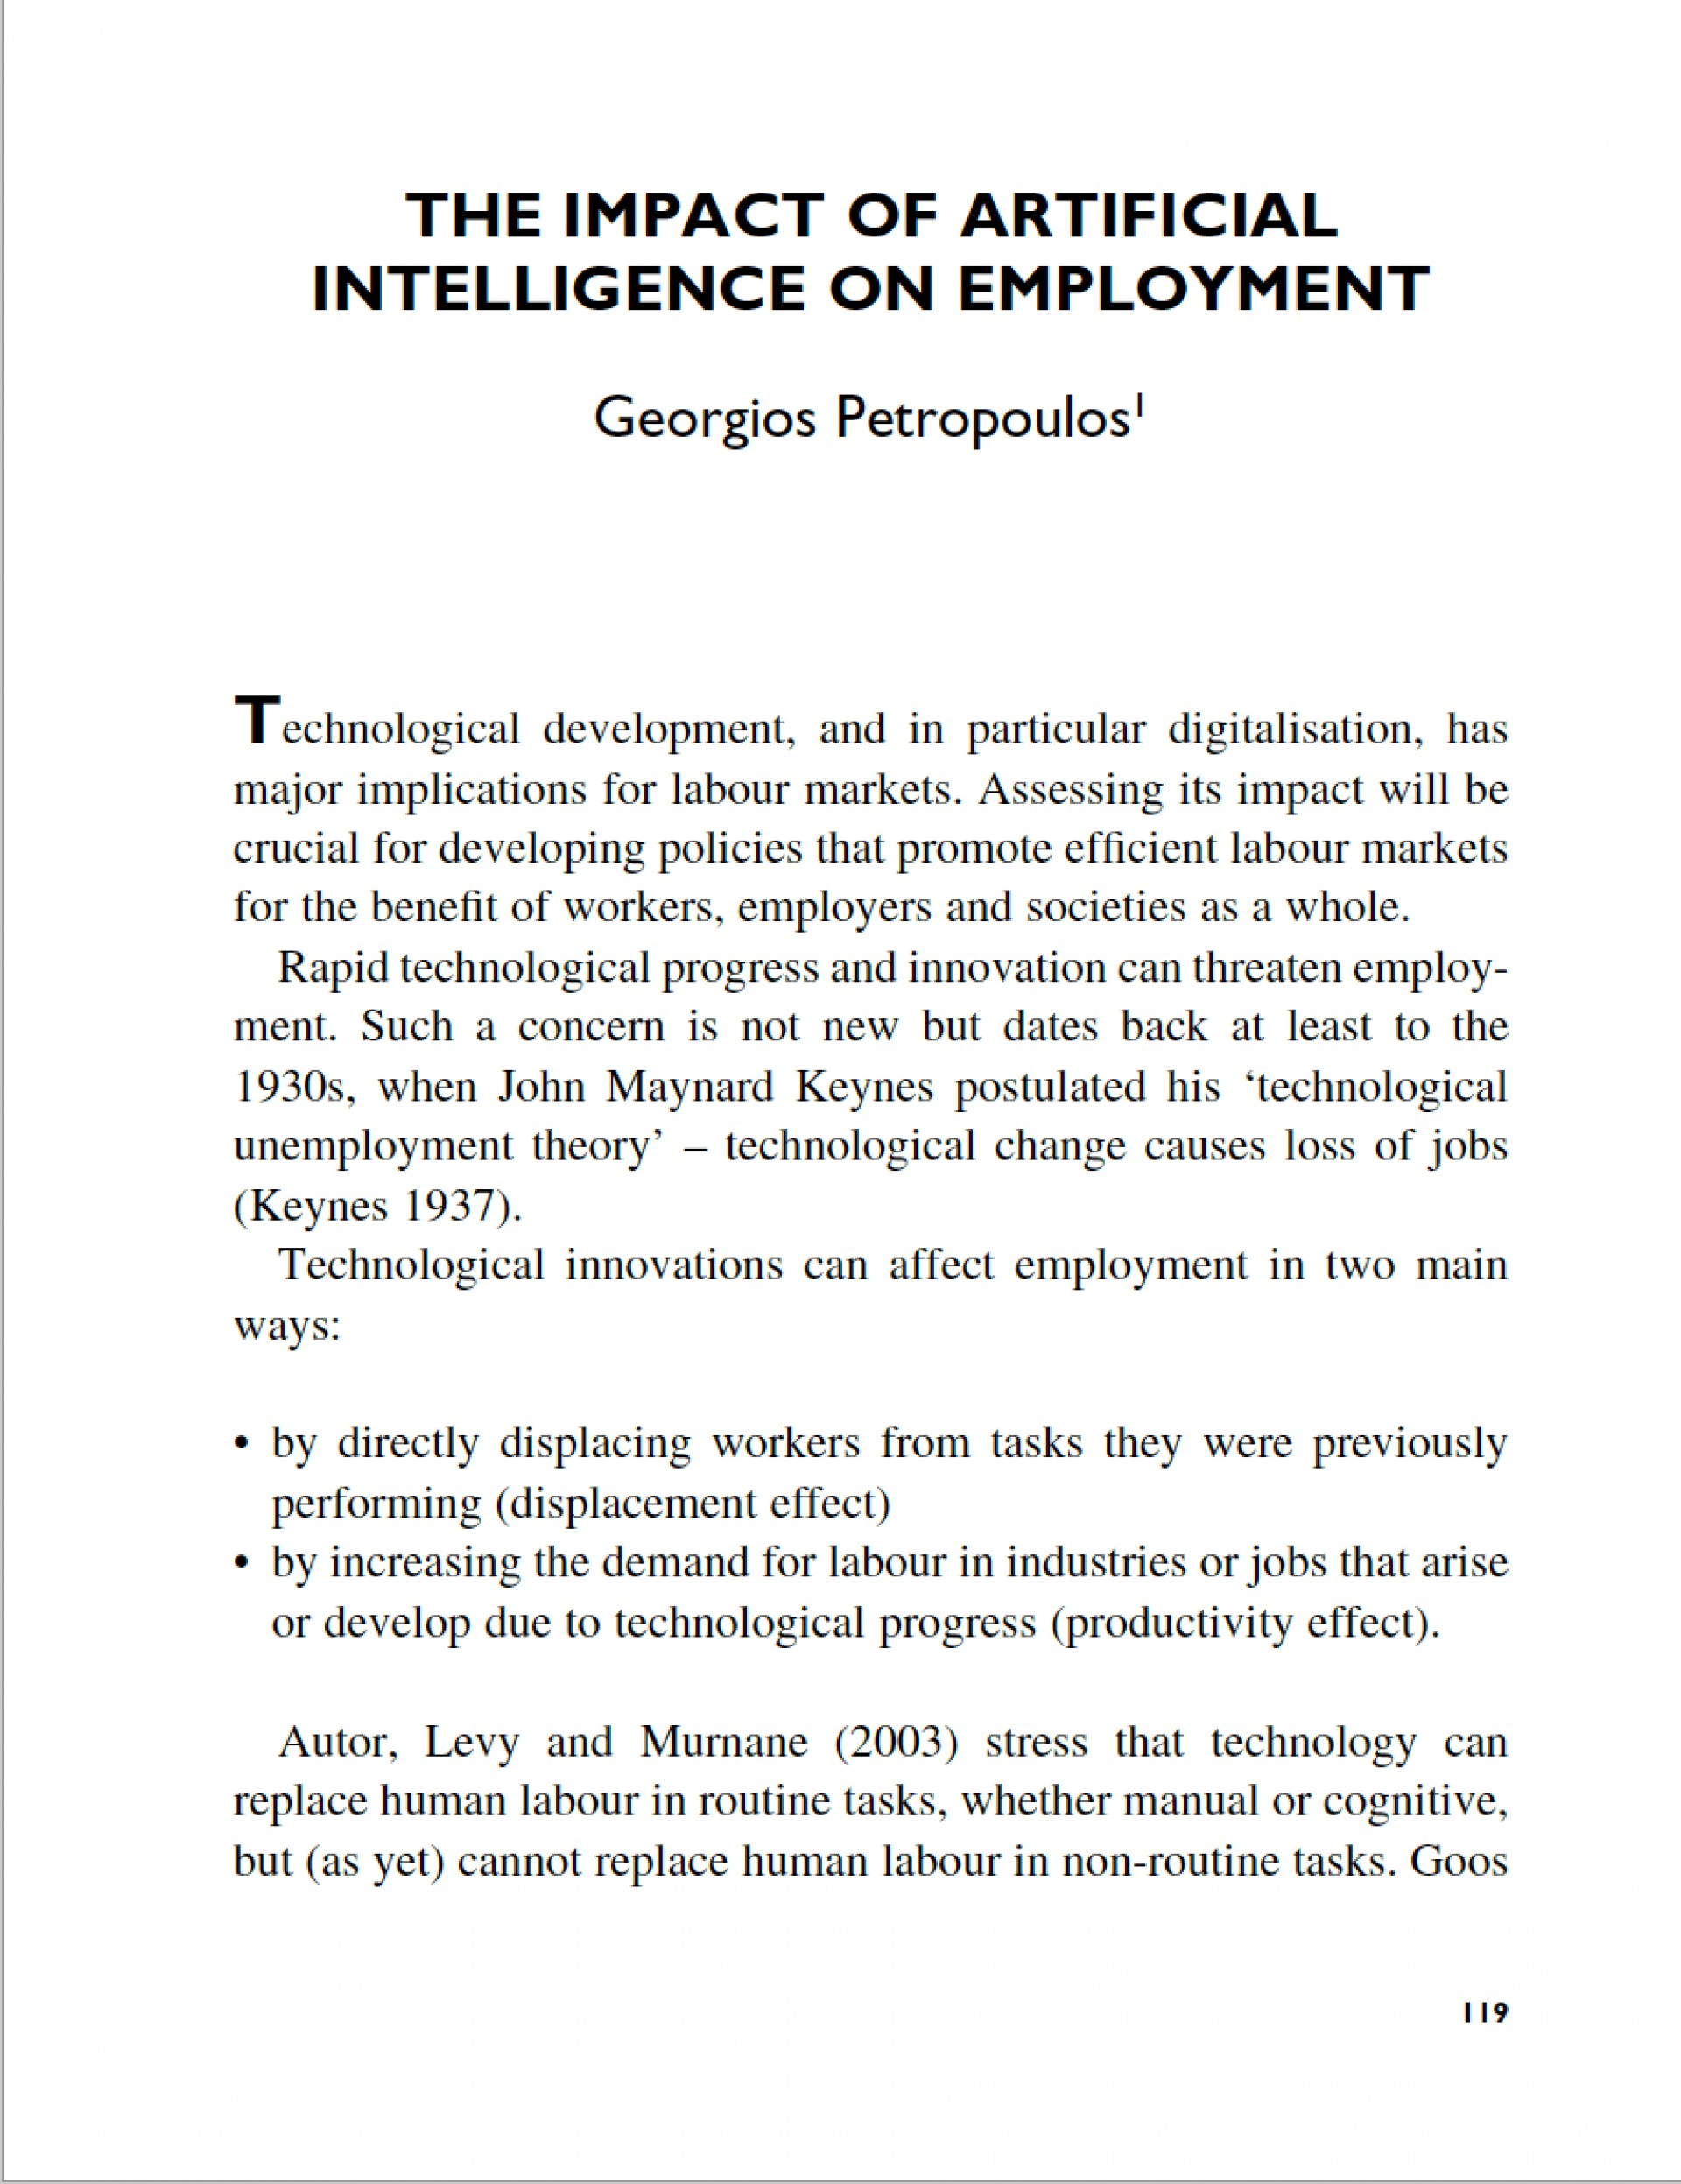 006 Screen Shot At Research Paper Artificial Intelligence Archaicawful 2018 Pdf 1920